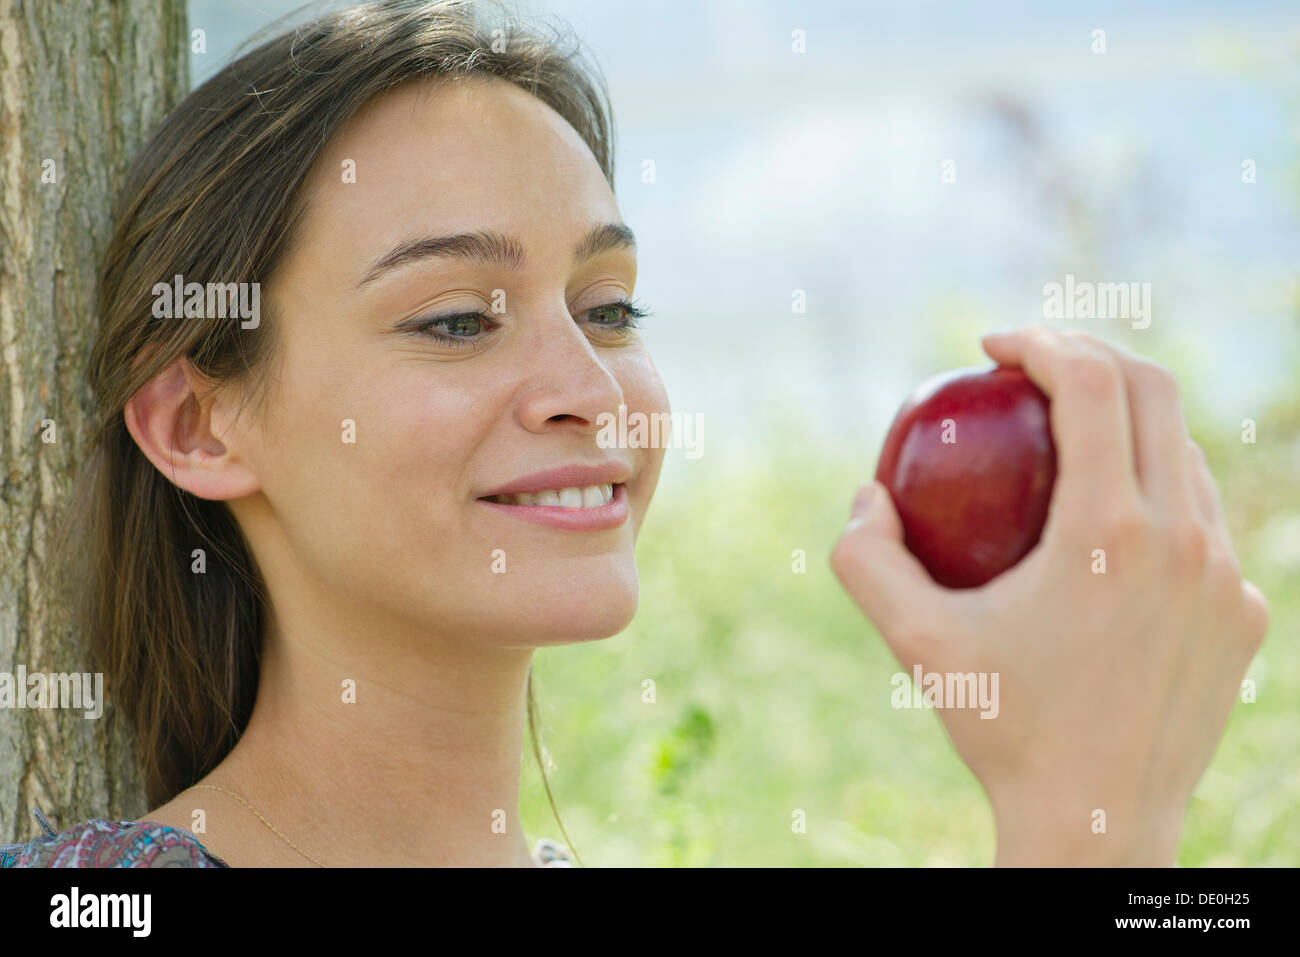 Woman sitting outdoors with apple - Stock Image